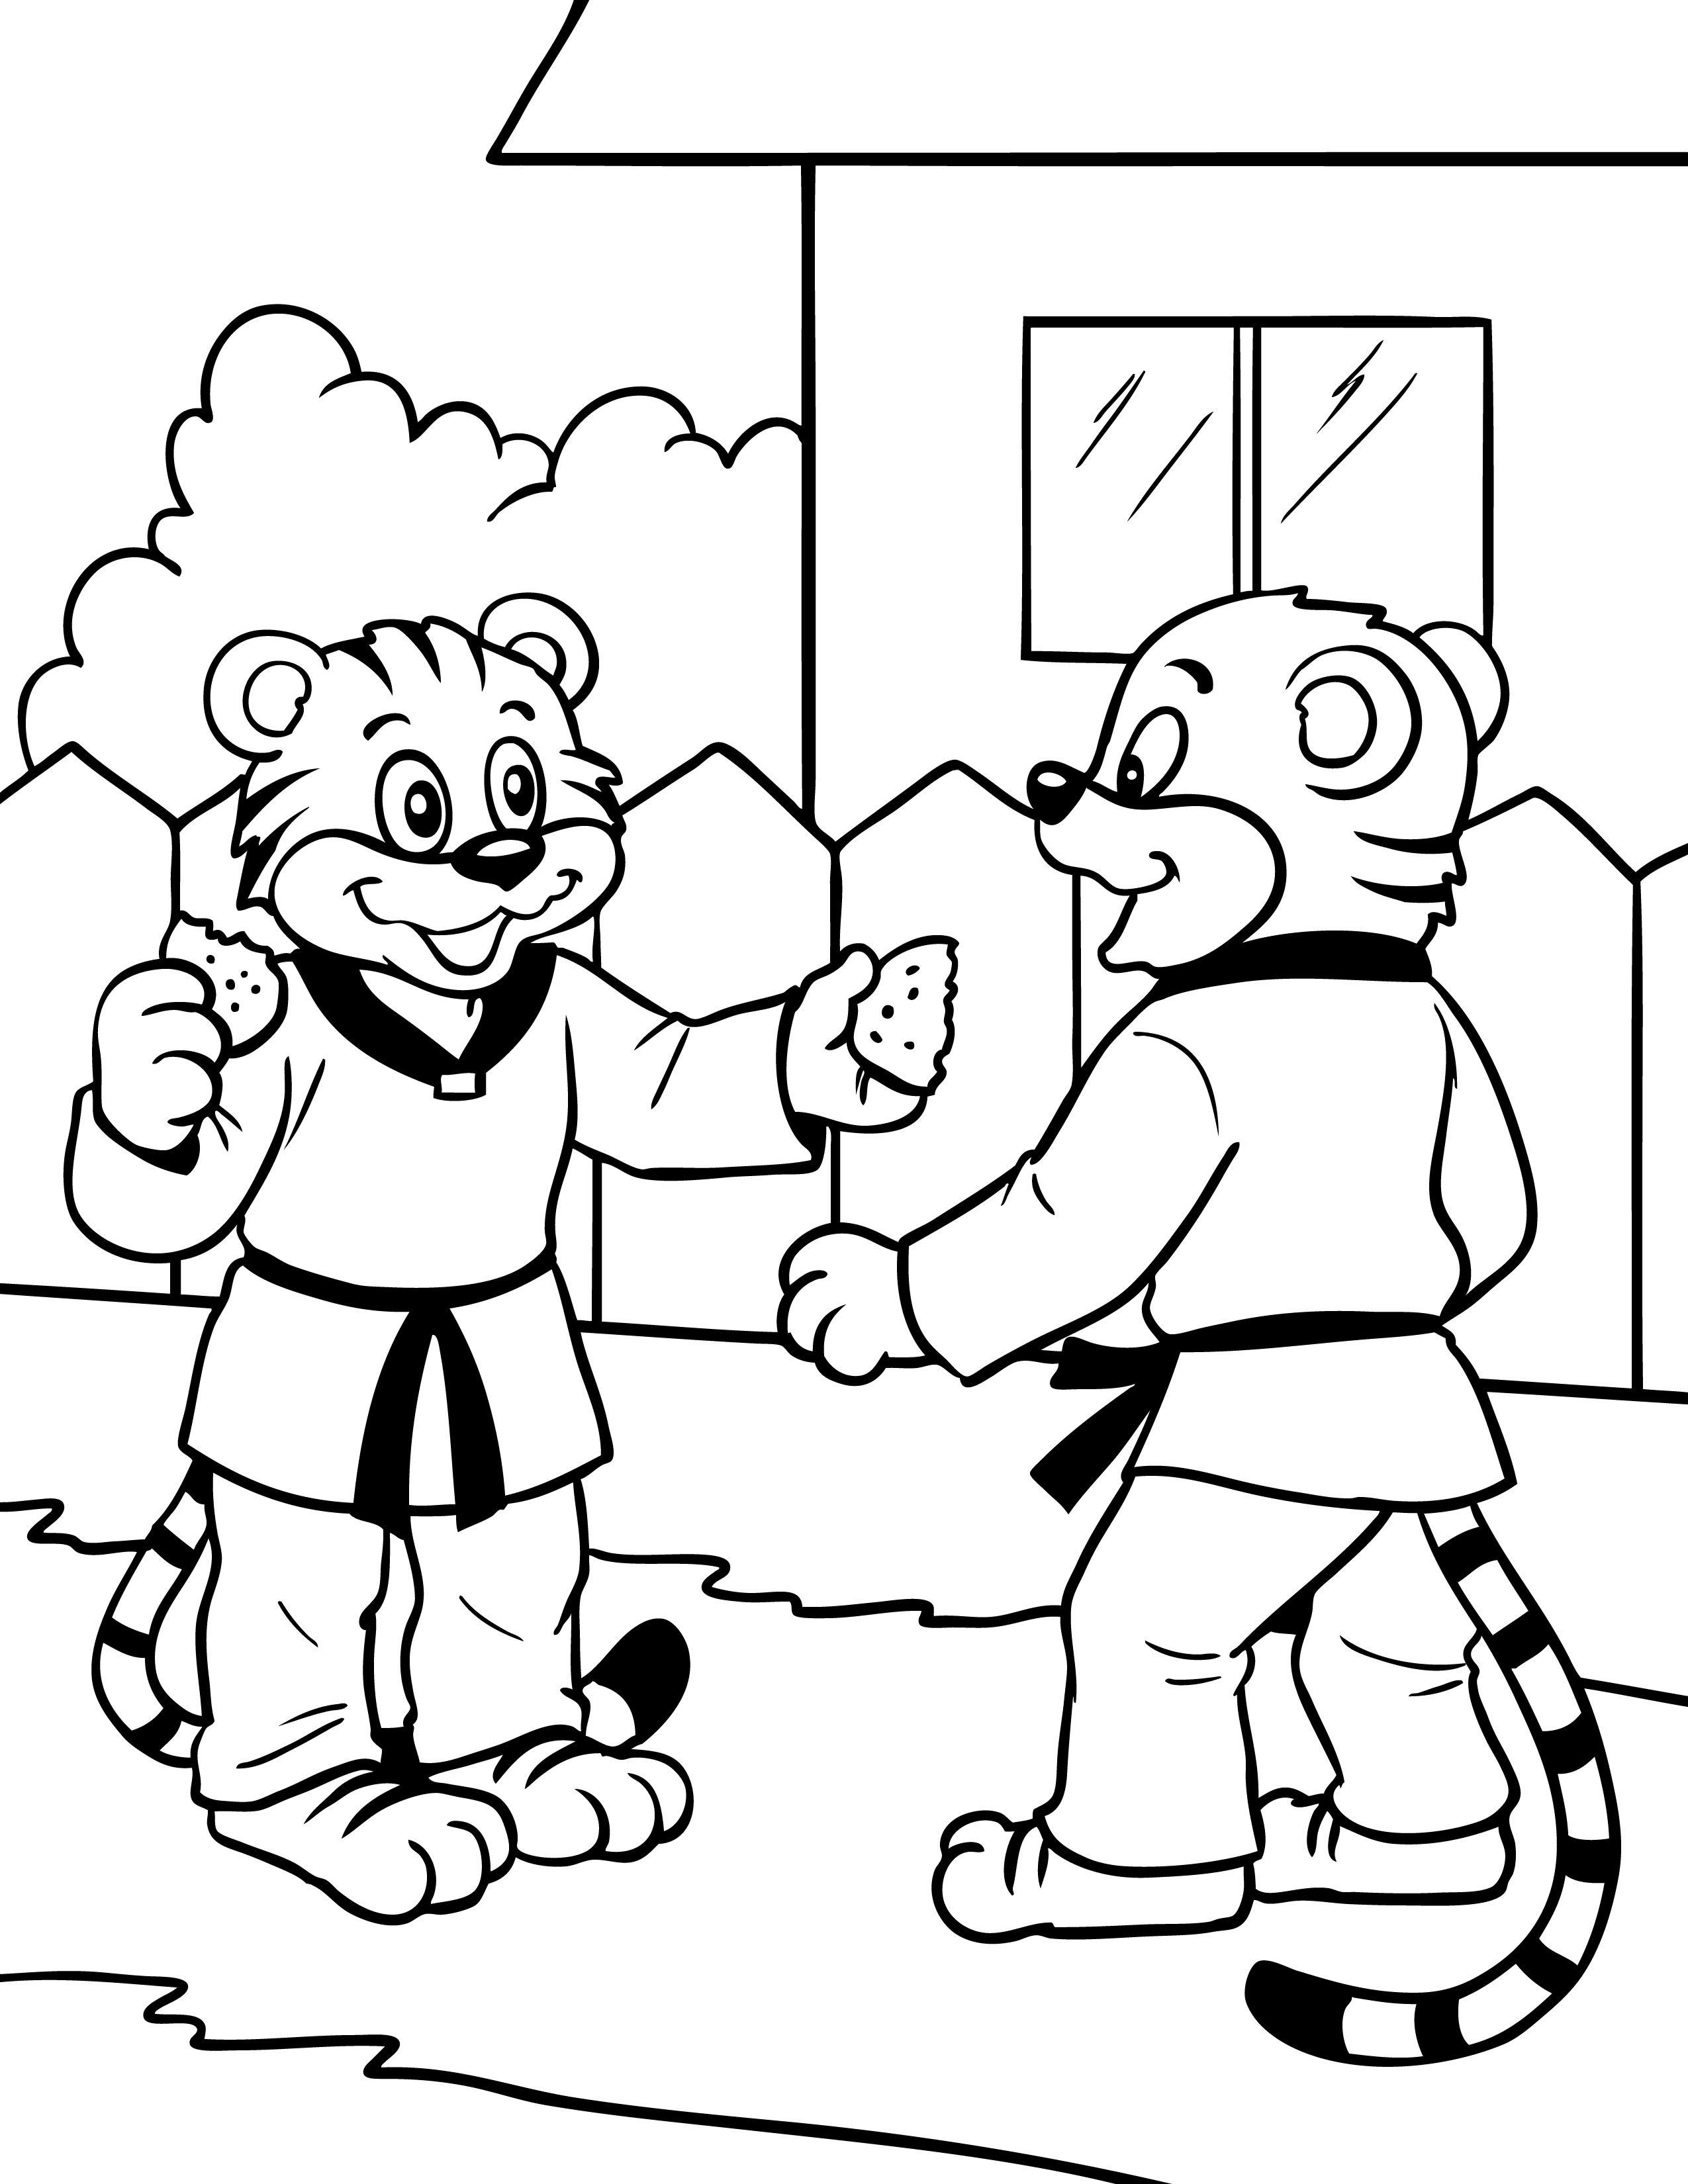 make detailed line drawings for children book story books